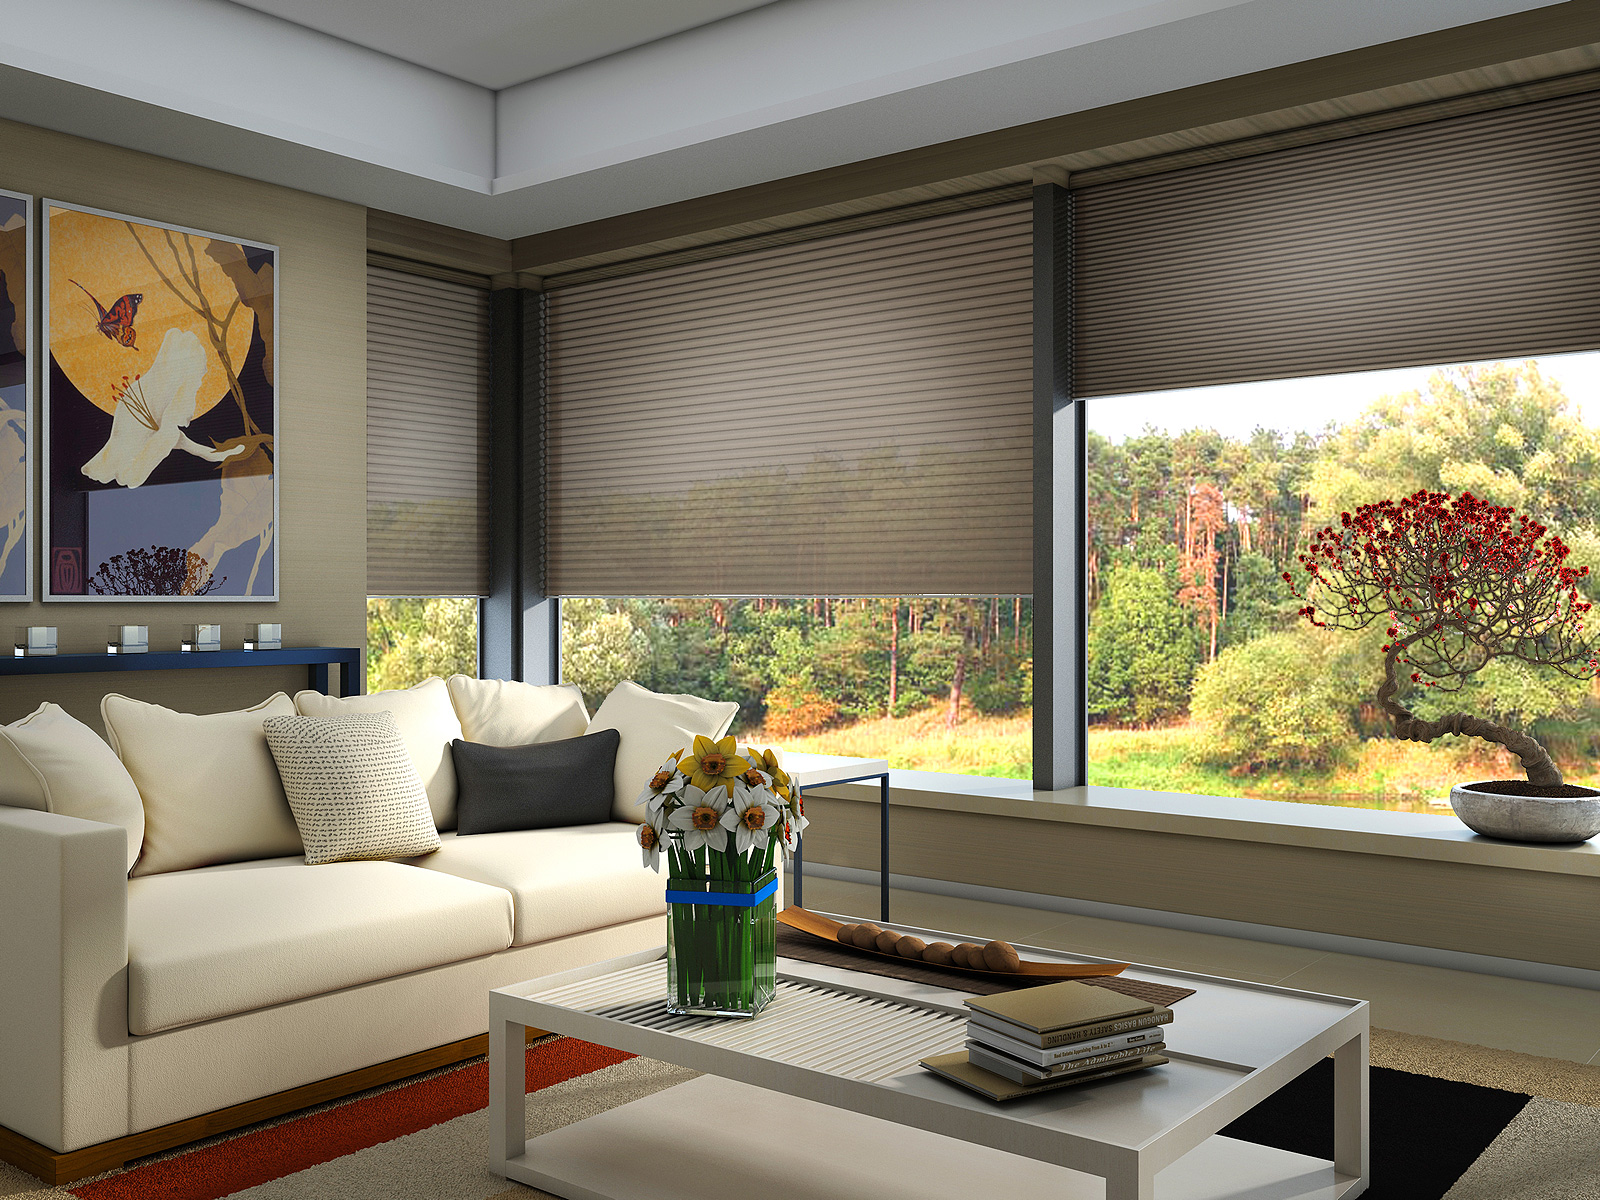 drapes together online sheer buy vertical window for curtains decoration and sale blinds shades coverings treatments